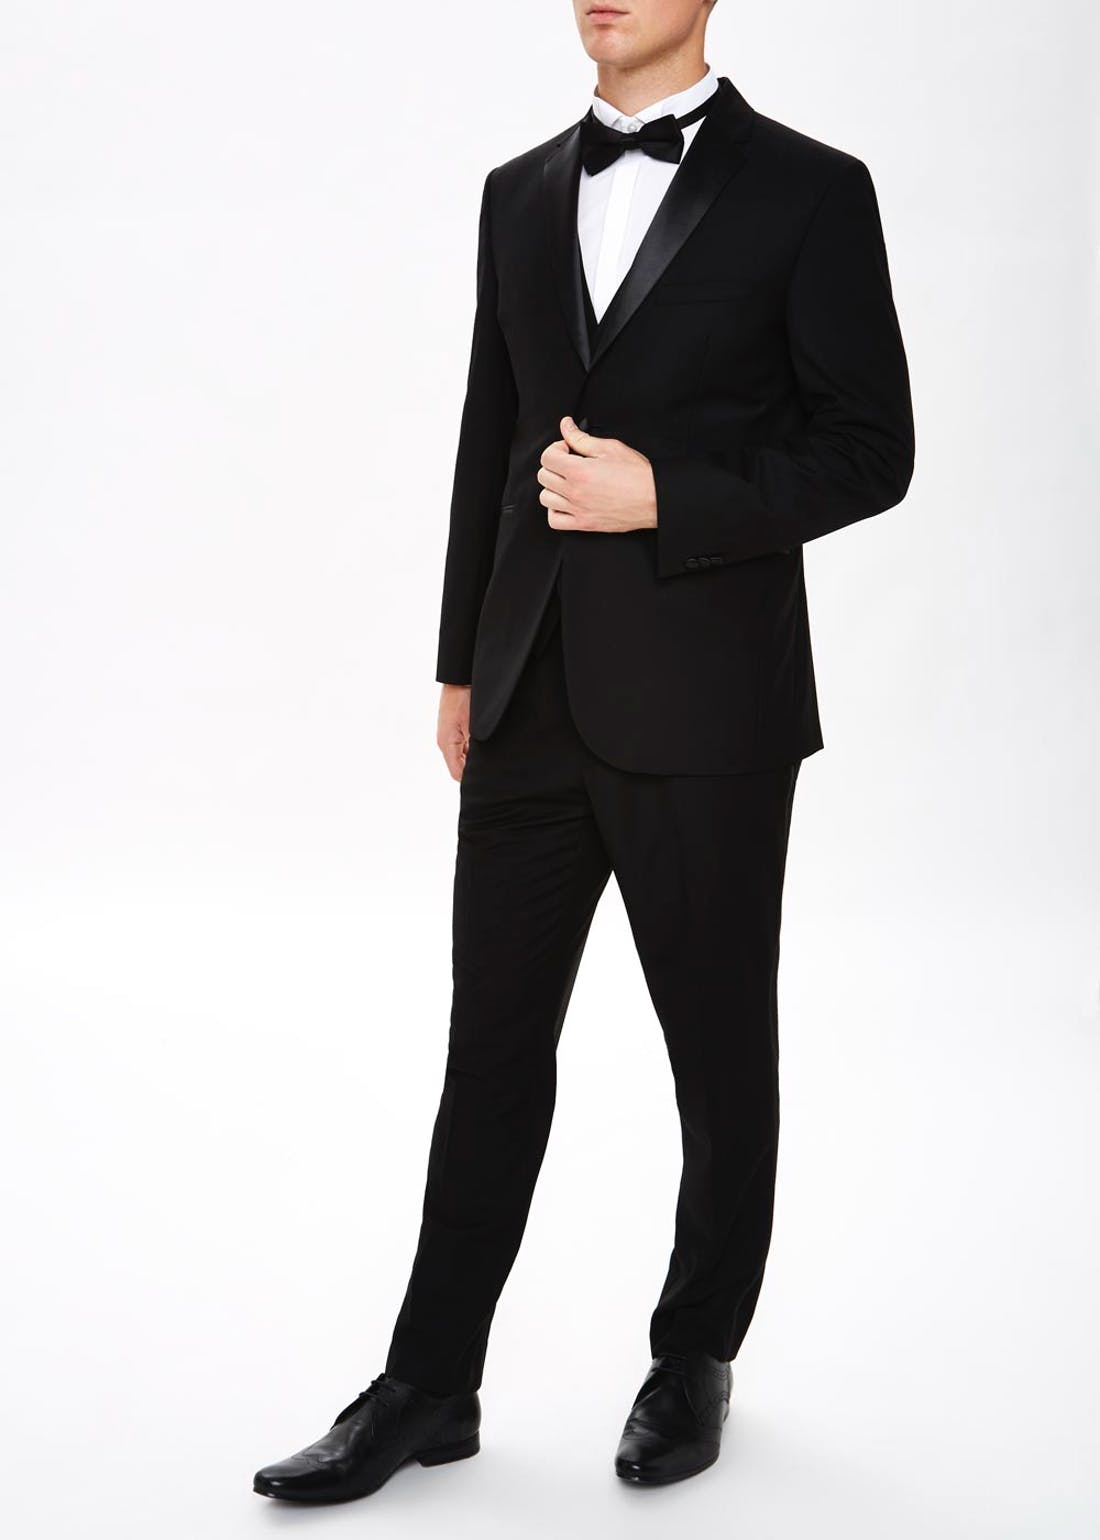 Taylor & Wright Firth Tailored Fit Tuxedo Trousers